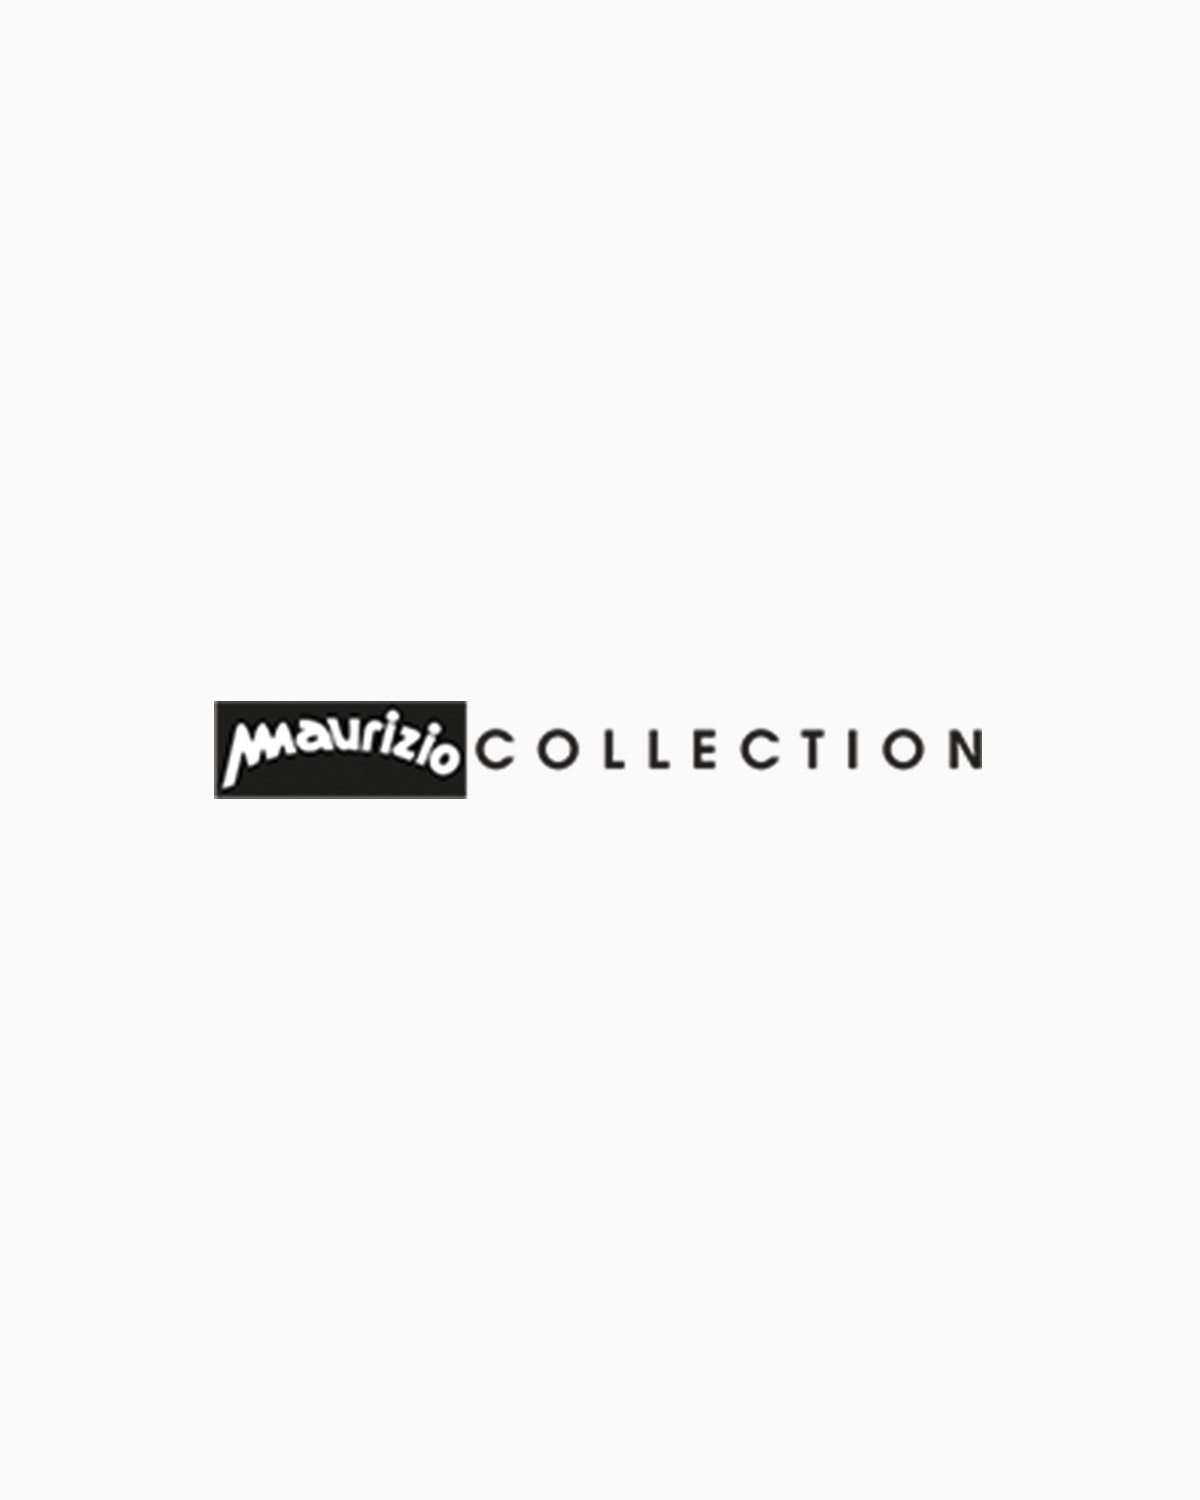 knitwear men's- fall winter 2019